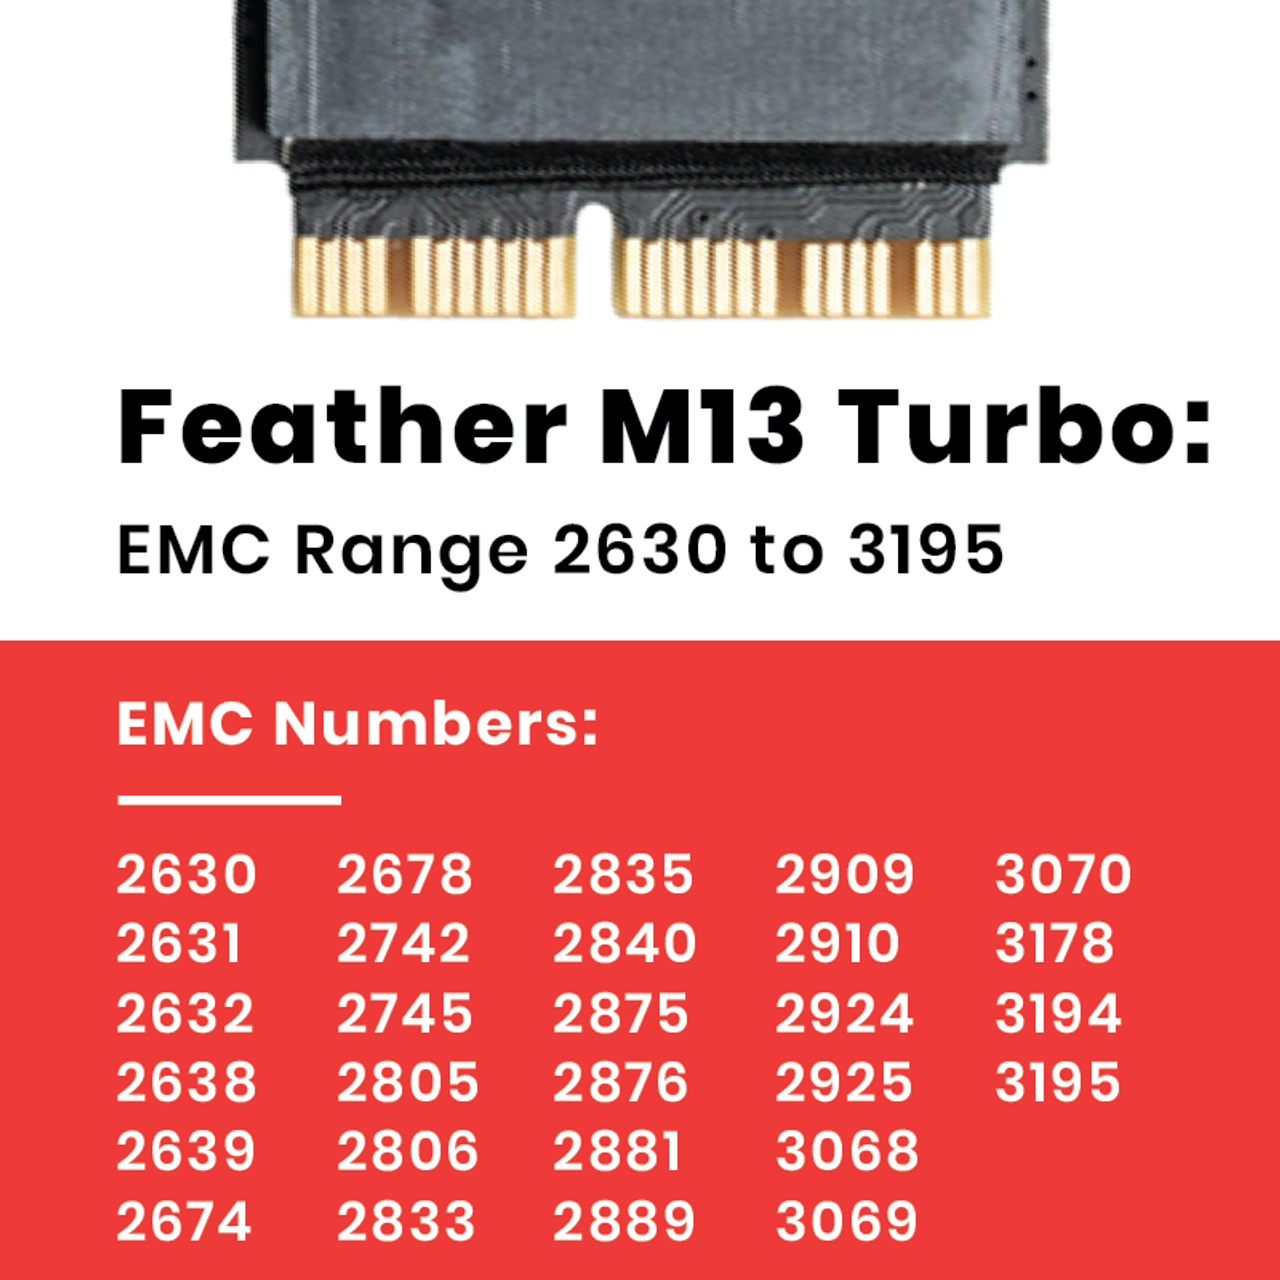 Feather M13 Turbo 256GB NVME SSD for MacBook Air and Macbook Pro mid 2013 and newer